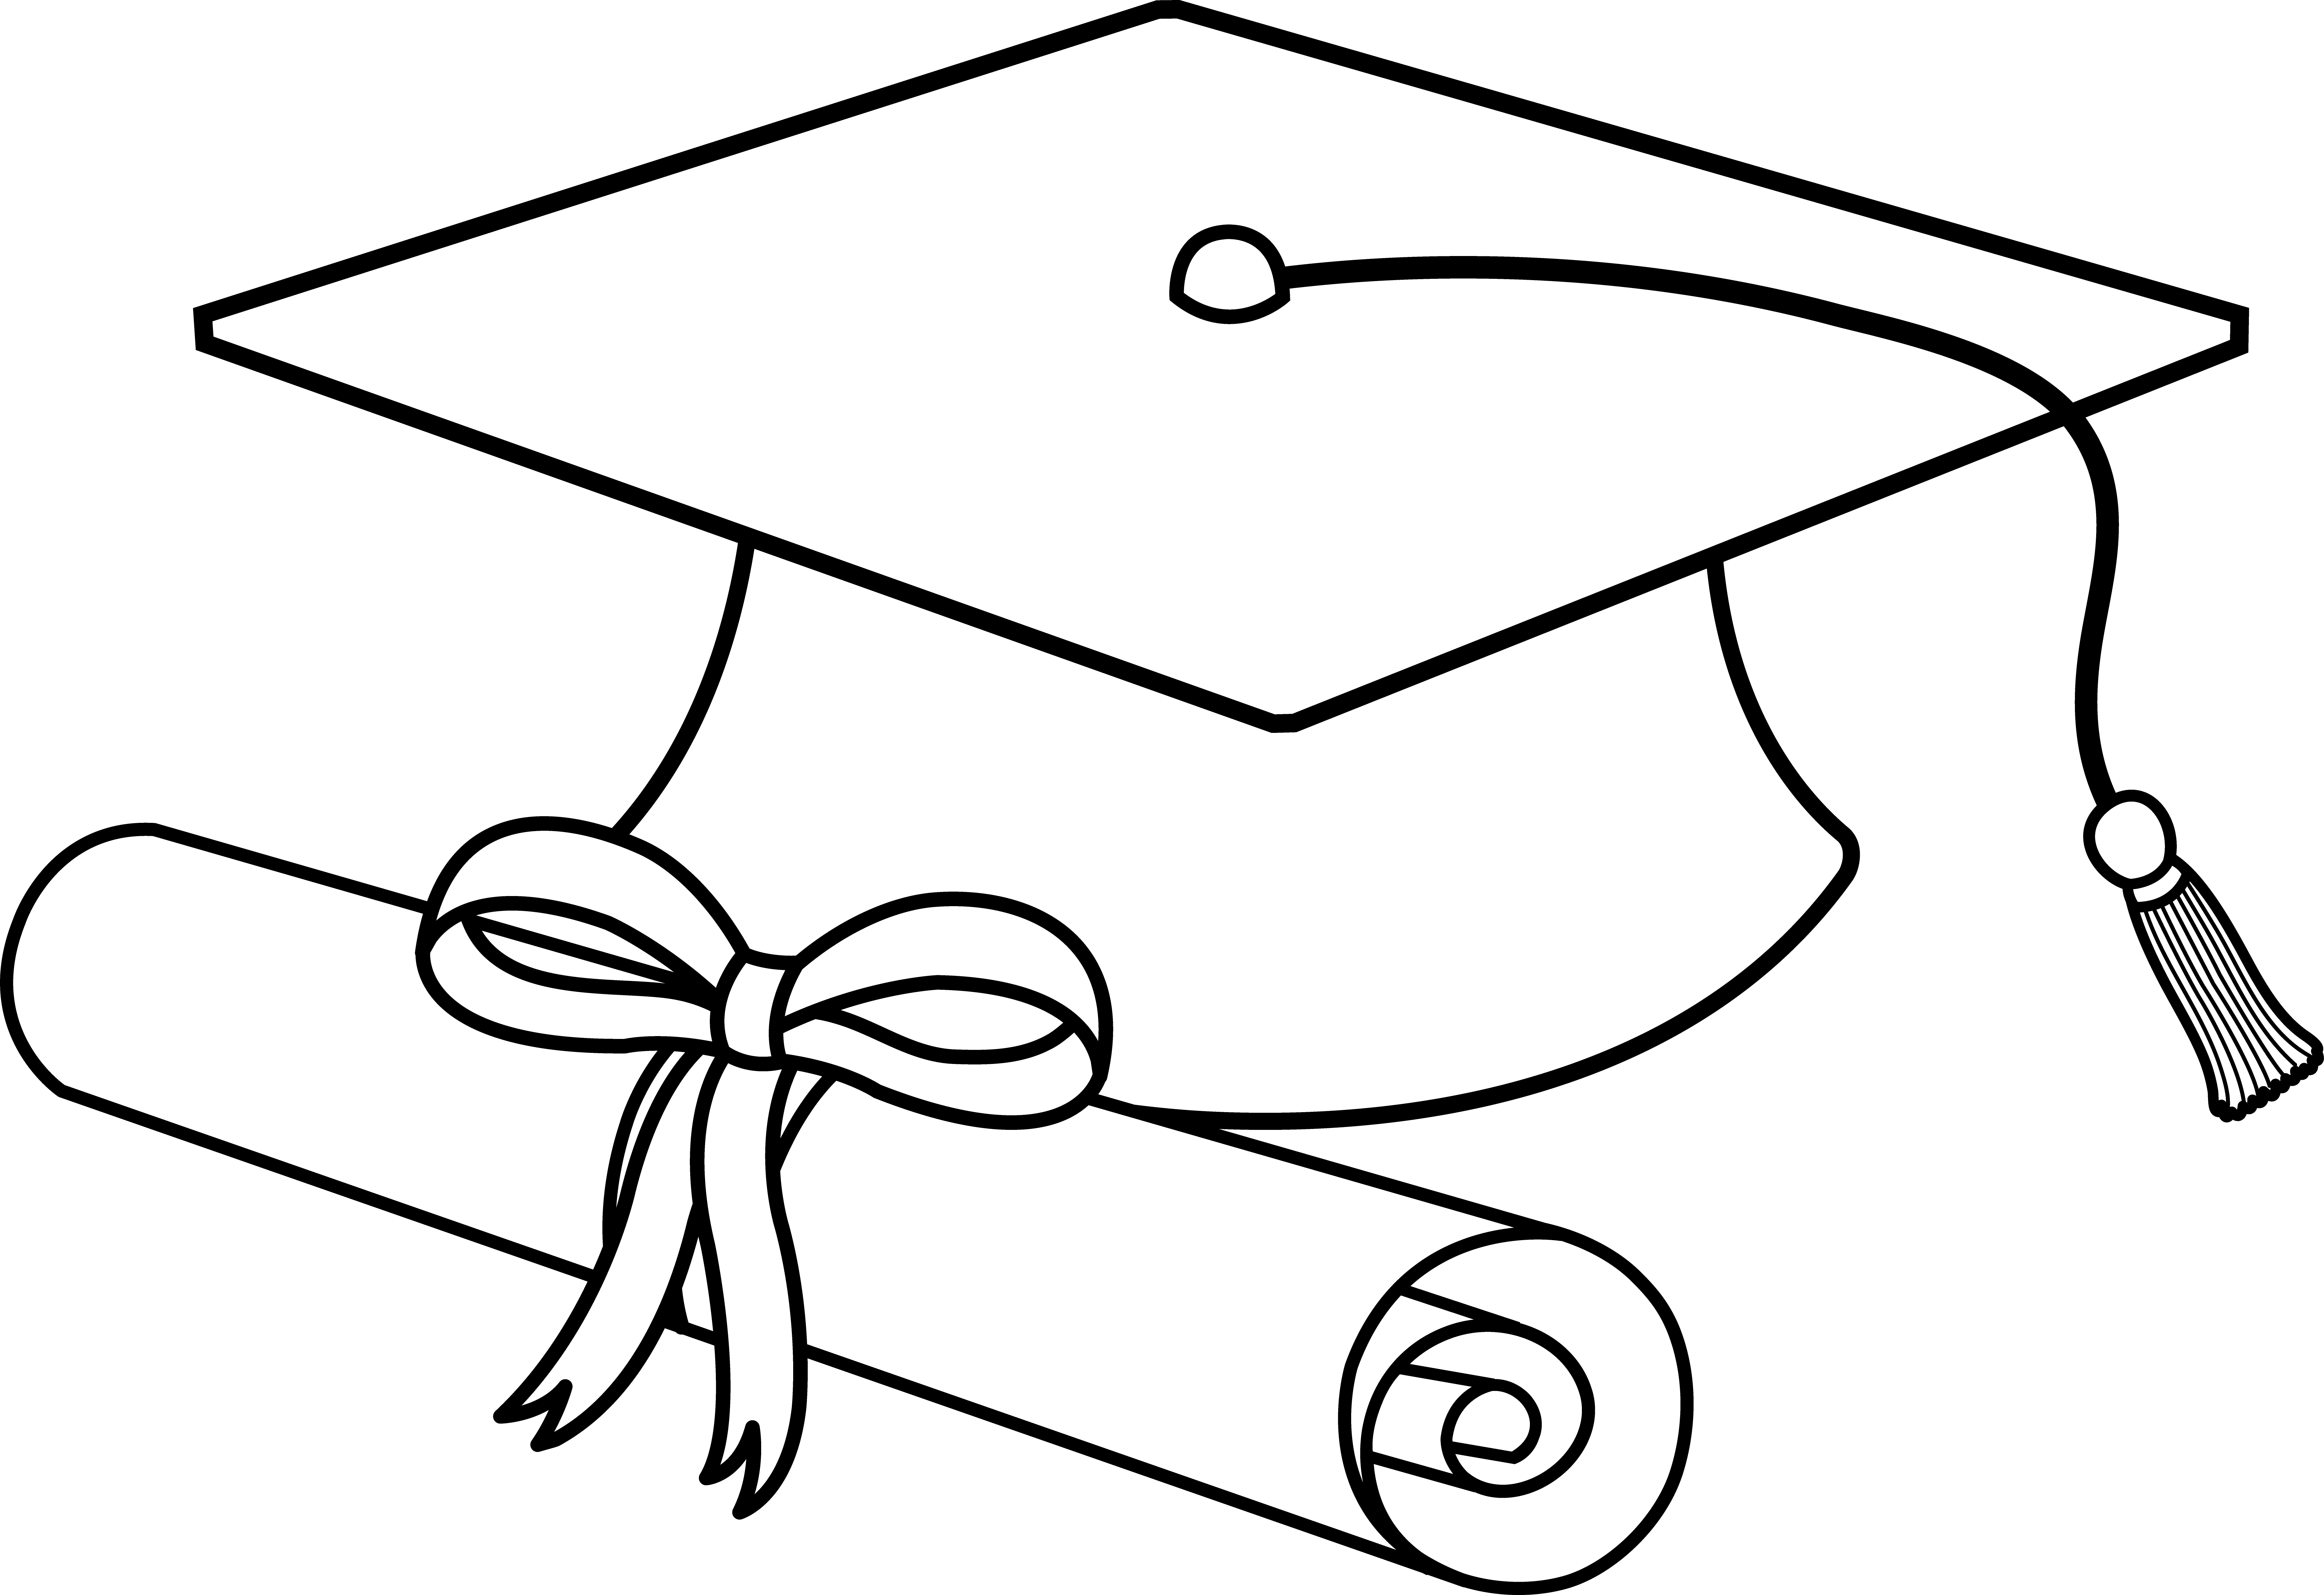 vector royalty free download Hat free bf f. Vector bulldog graduation cap clipart